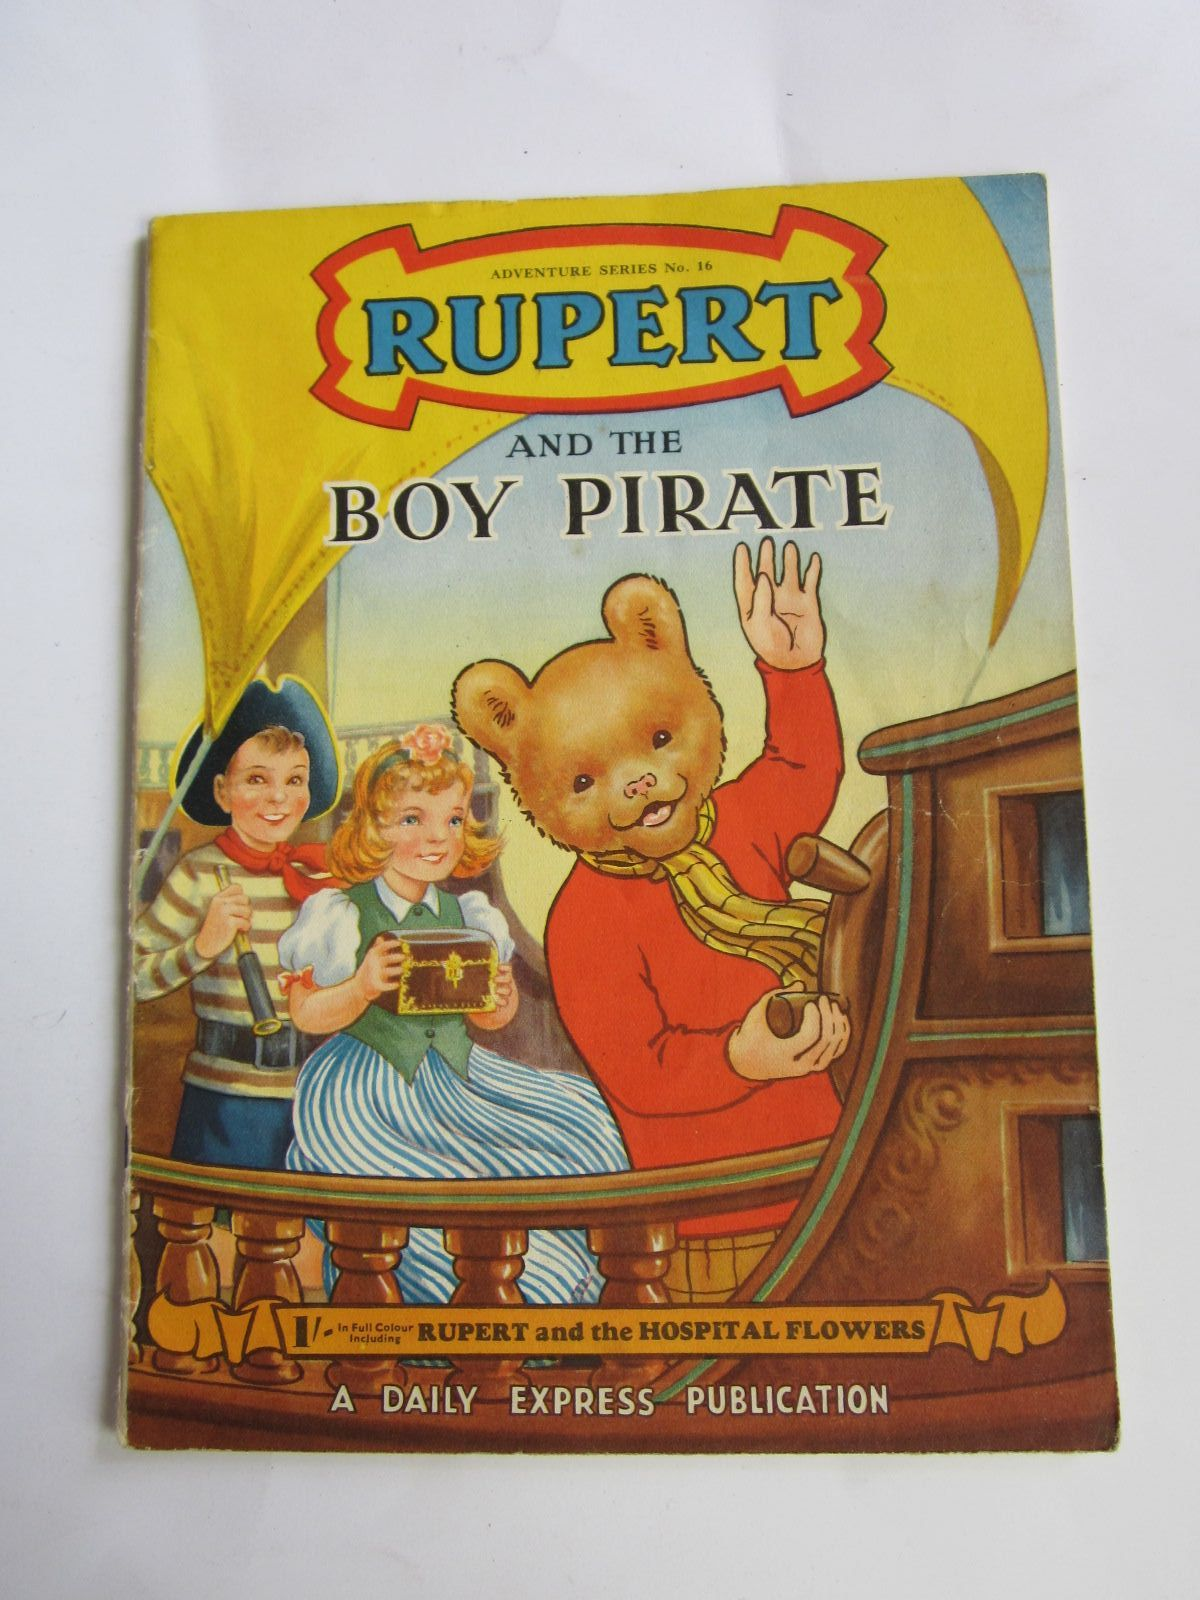 Photo of RUPERT ADVENTURE SERIES No. 16 - RUPERT AND THE BOY PIRATE written by Bestall, Alfred published by Daily Express (STOCK CODE: 1309059)  for sale by Stella & Rose's Books